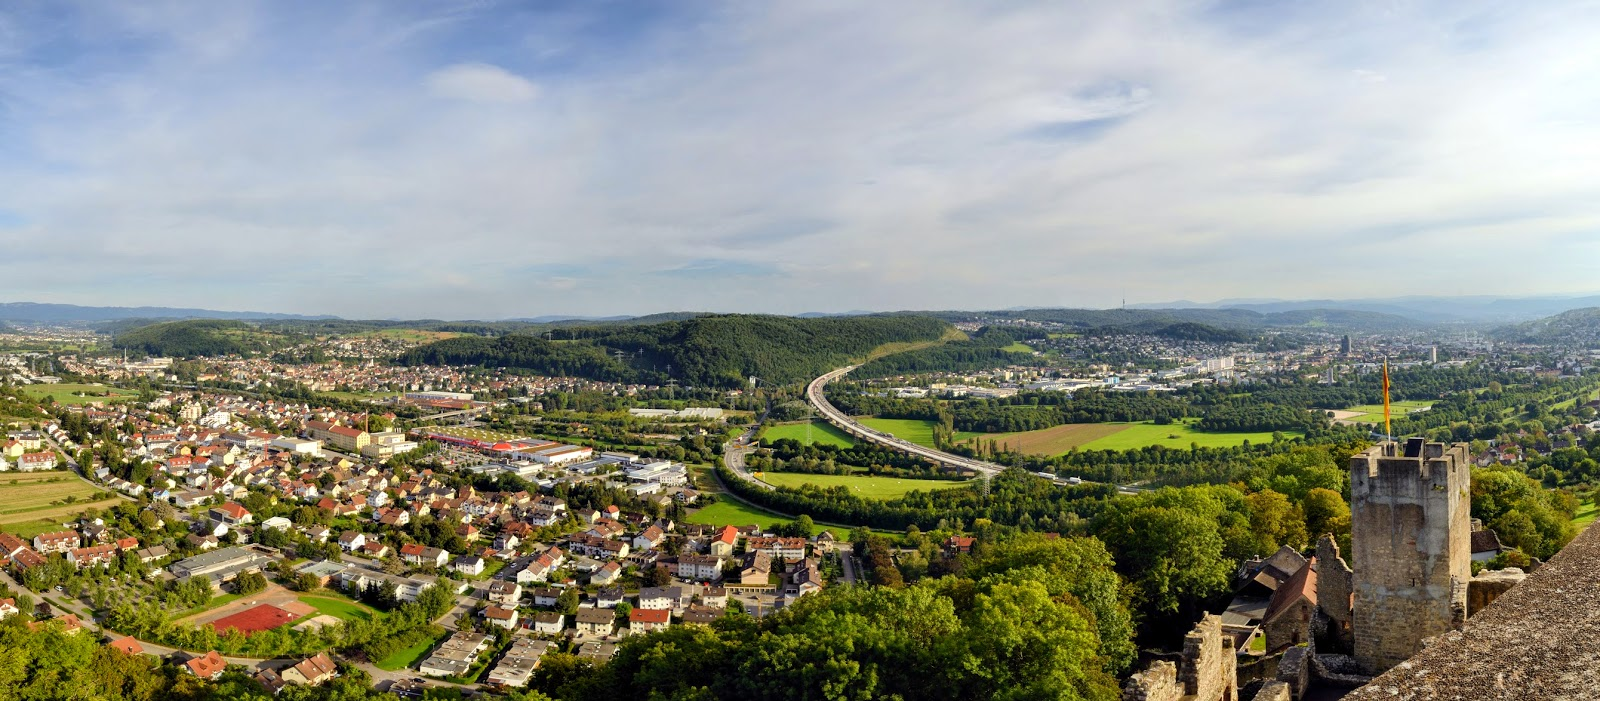 49000 people live in lrrach the district town that is the cultural and economic centre in the tri border region of germany france and switzerland